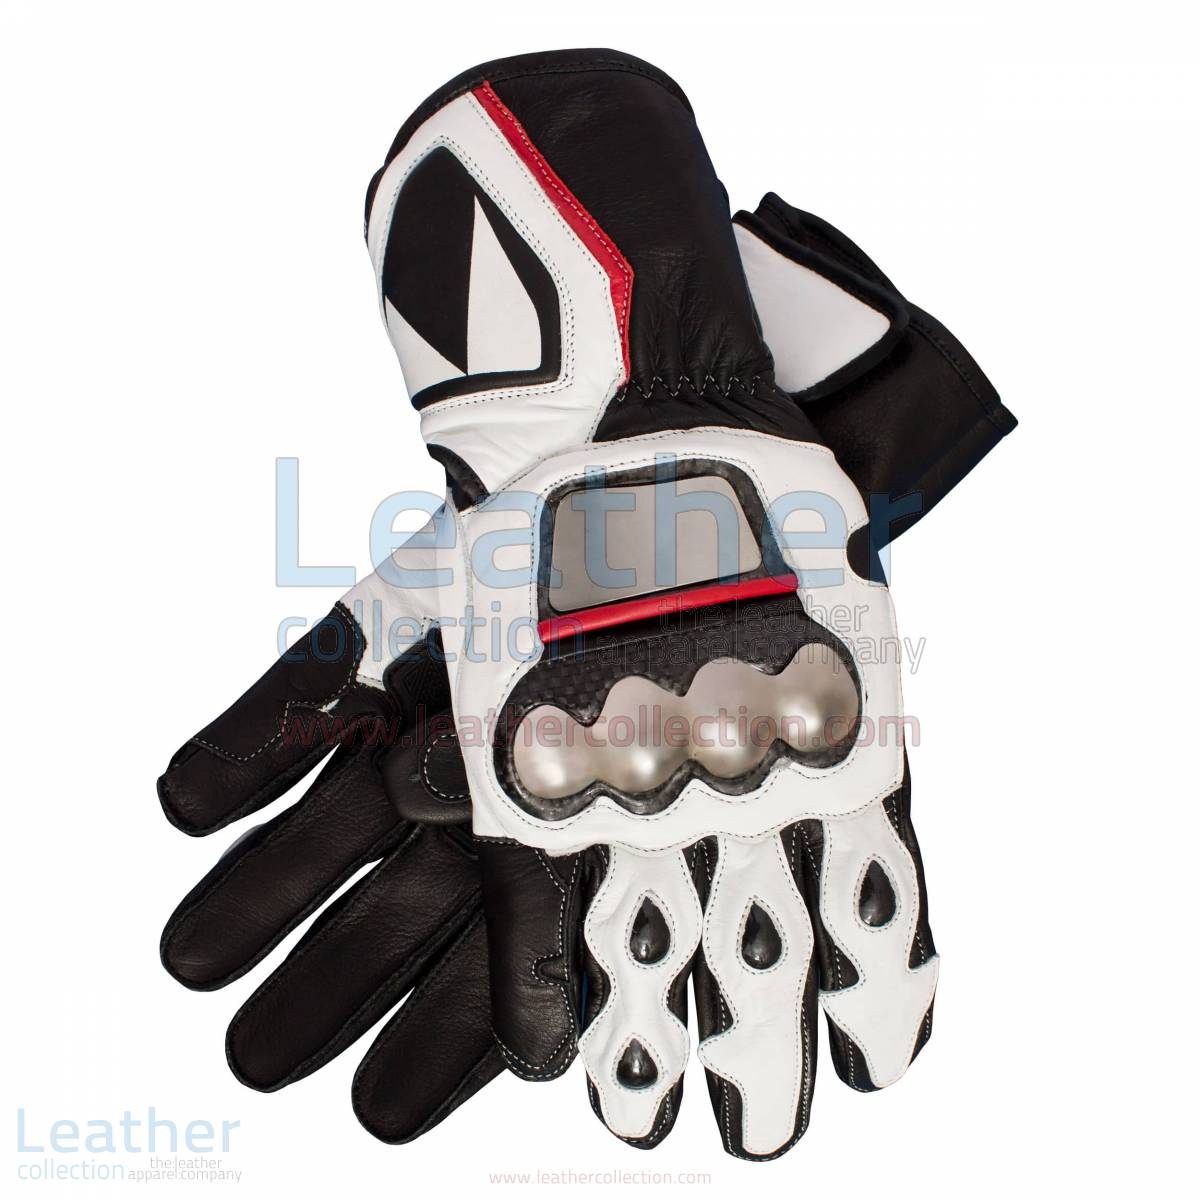 Max Biaggi Motorcycle Race Gloves –  Gloves